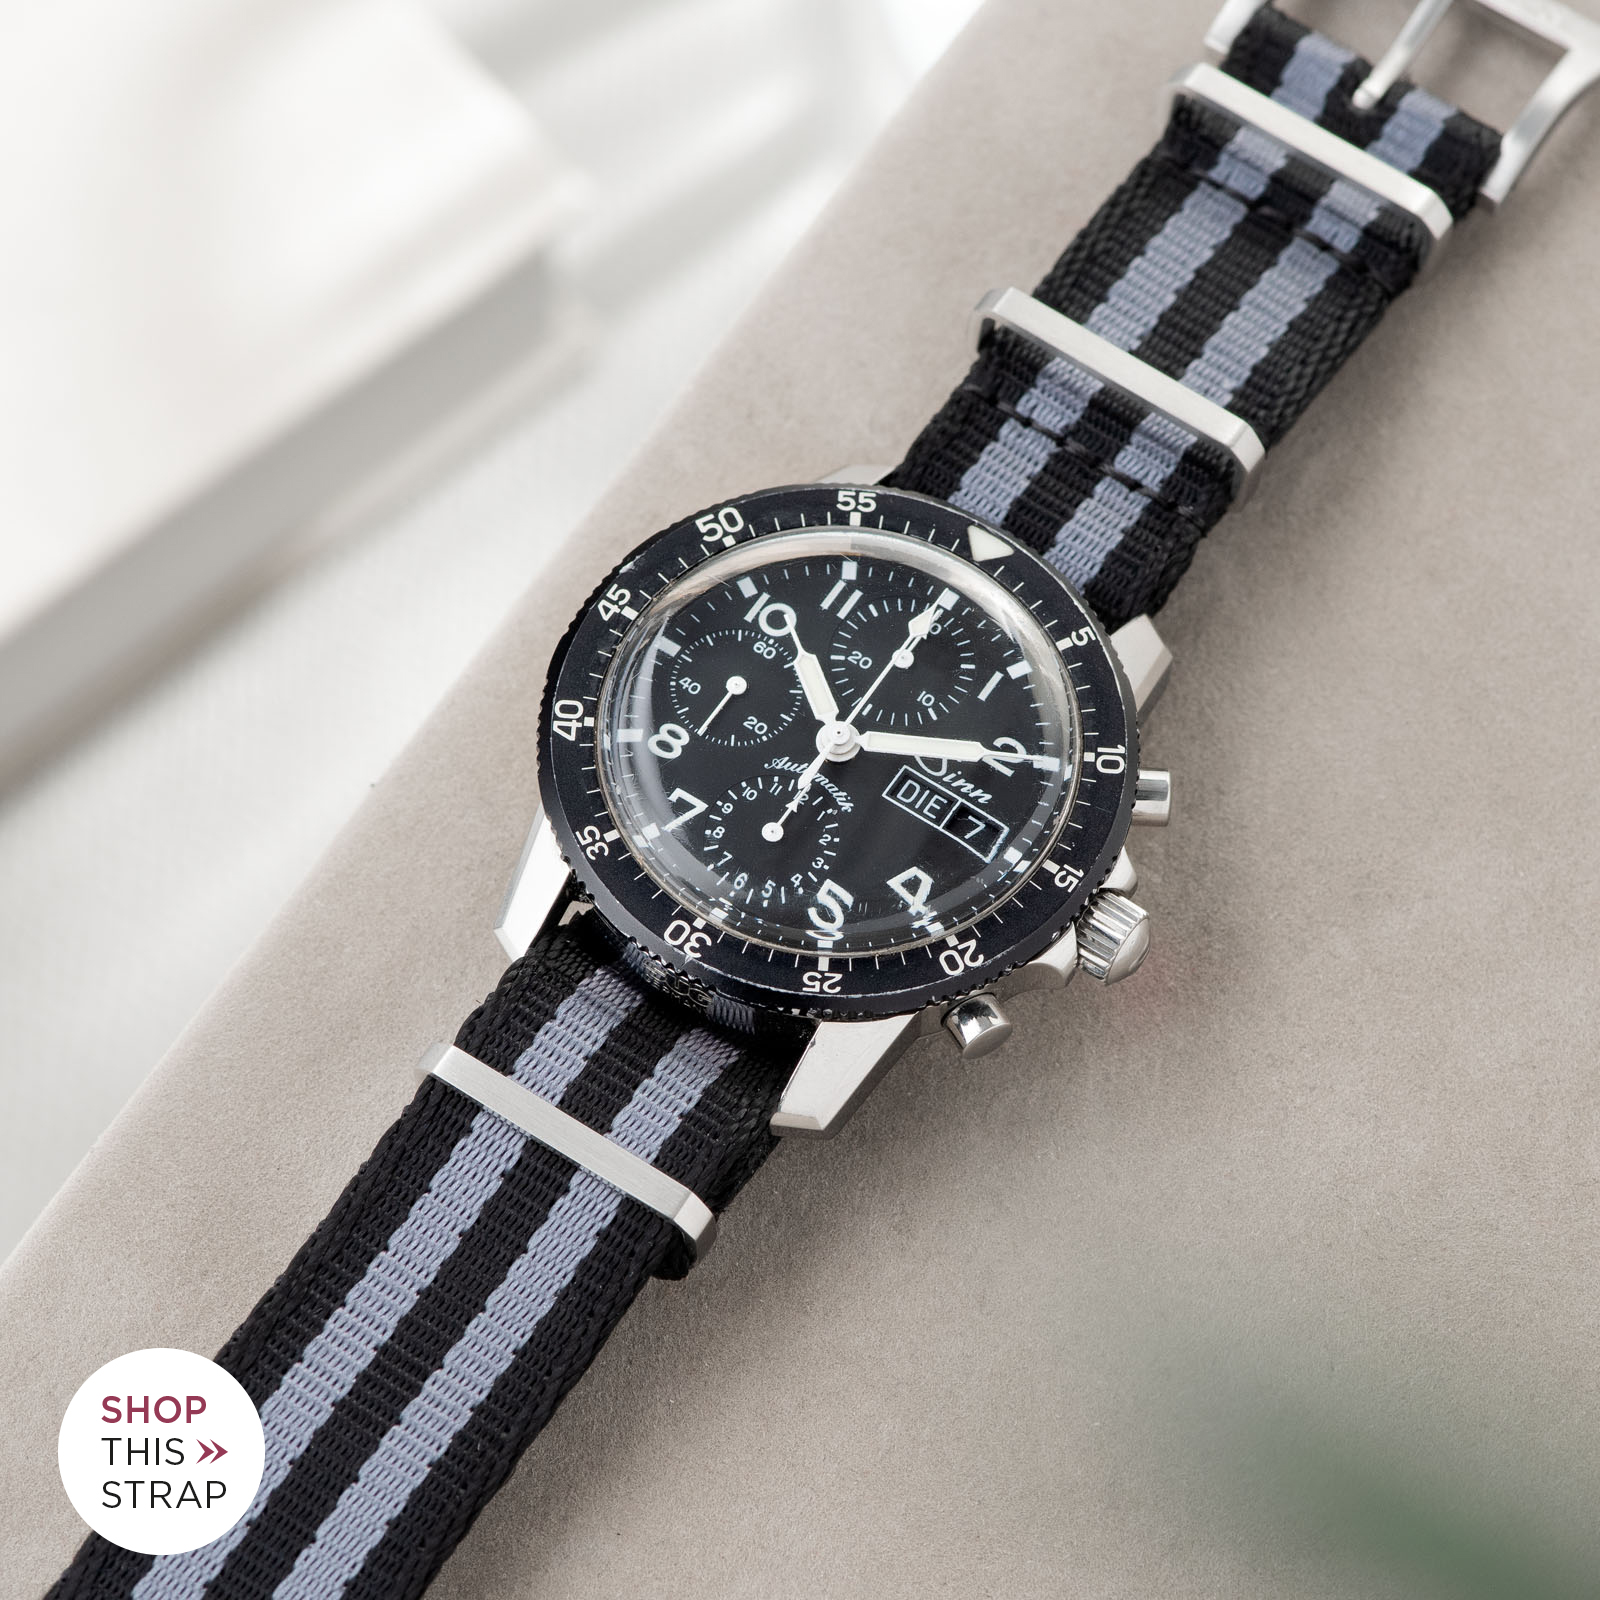 Bulang and Sons_Strap Guide_Sinn 103_Deluxe Nylon Nato Watch Strap Black Two Stripes Grey